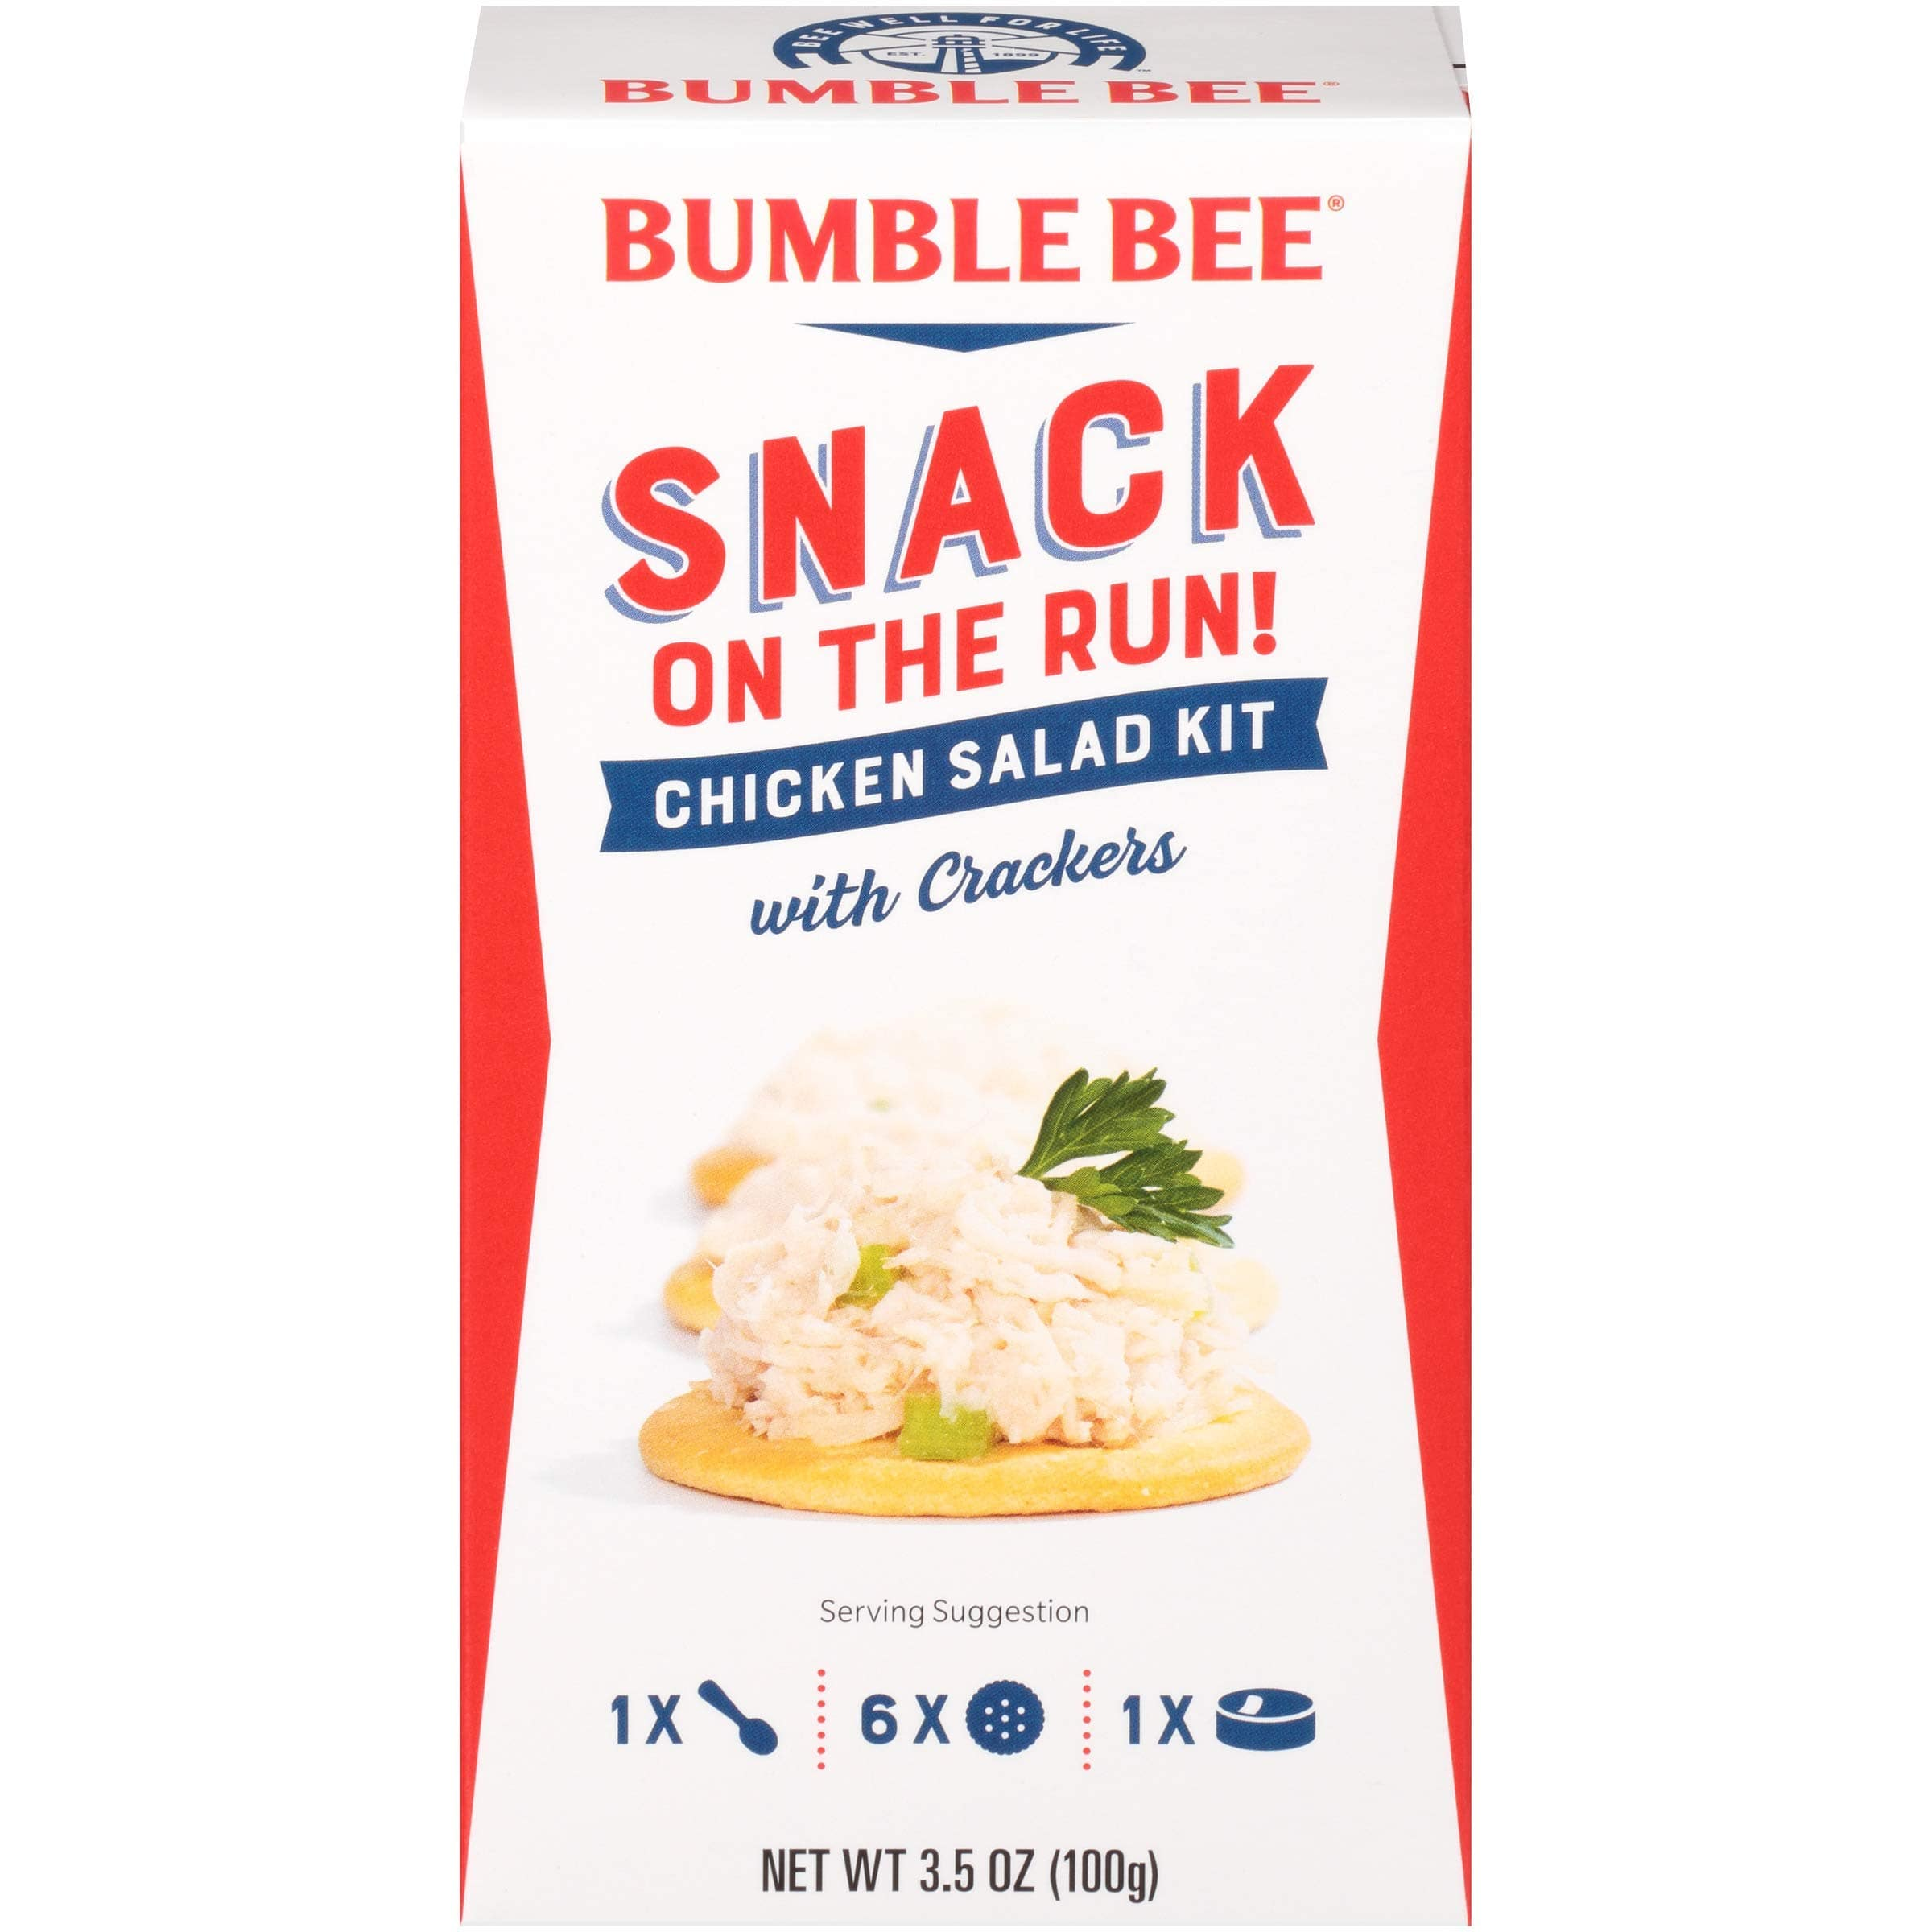 Amazon : BUMBLE BEE Chicken Salad Snack on the Run - 12  Pack  $8.88 or $8.29 W/ S&S  $3.00 off Coupon